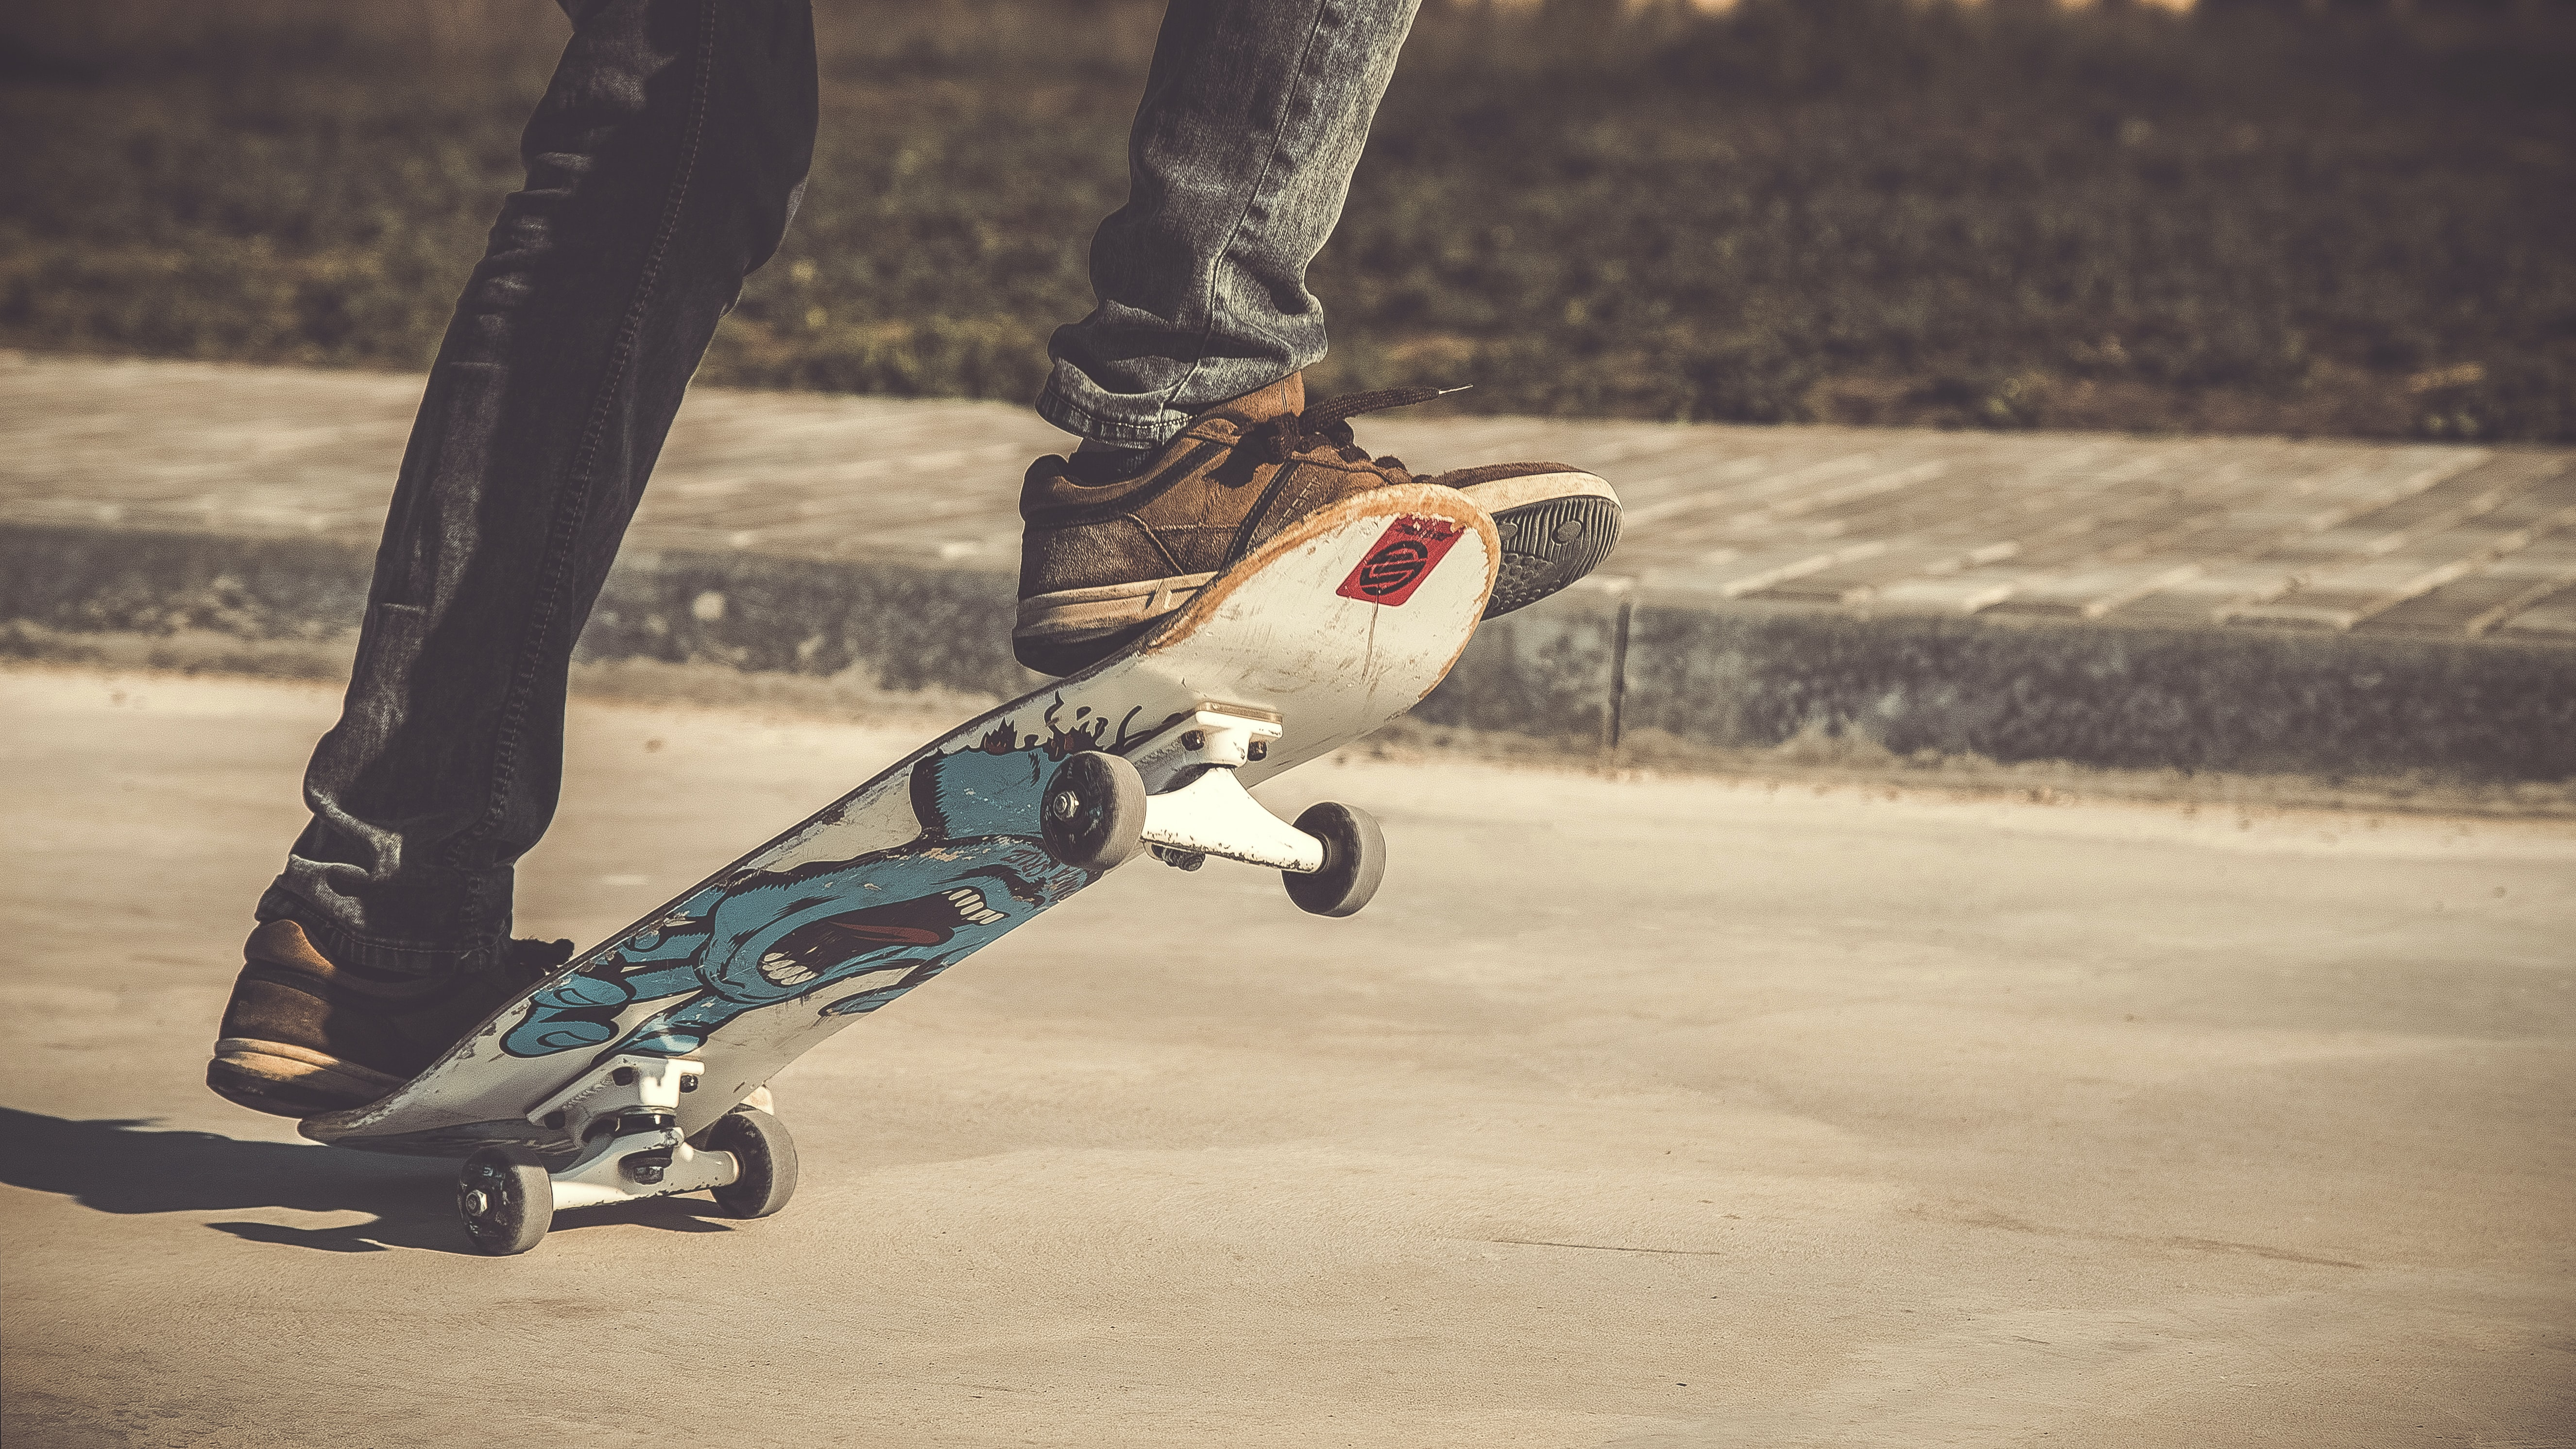 Cropped shot of a skateboarder's feet.